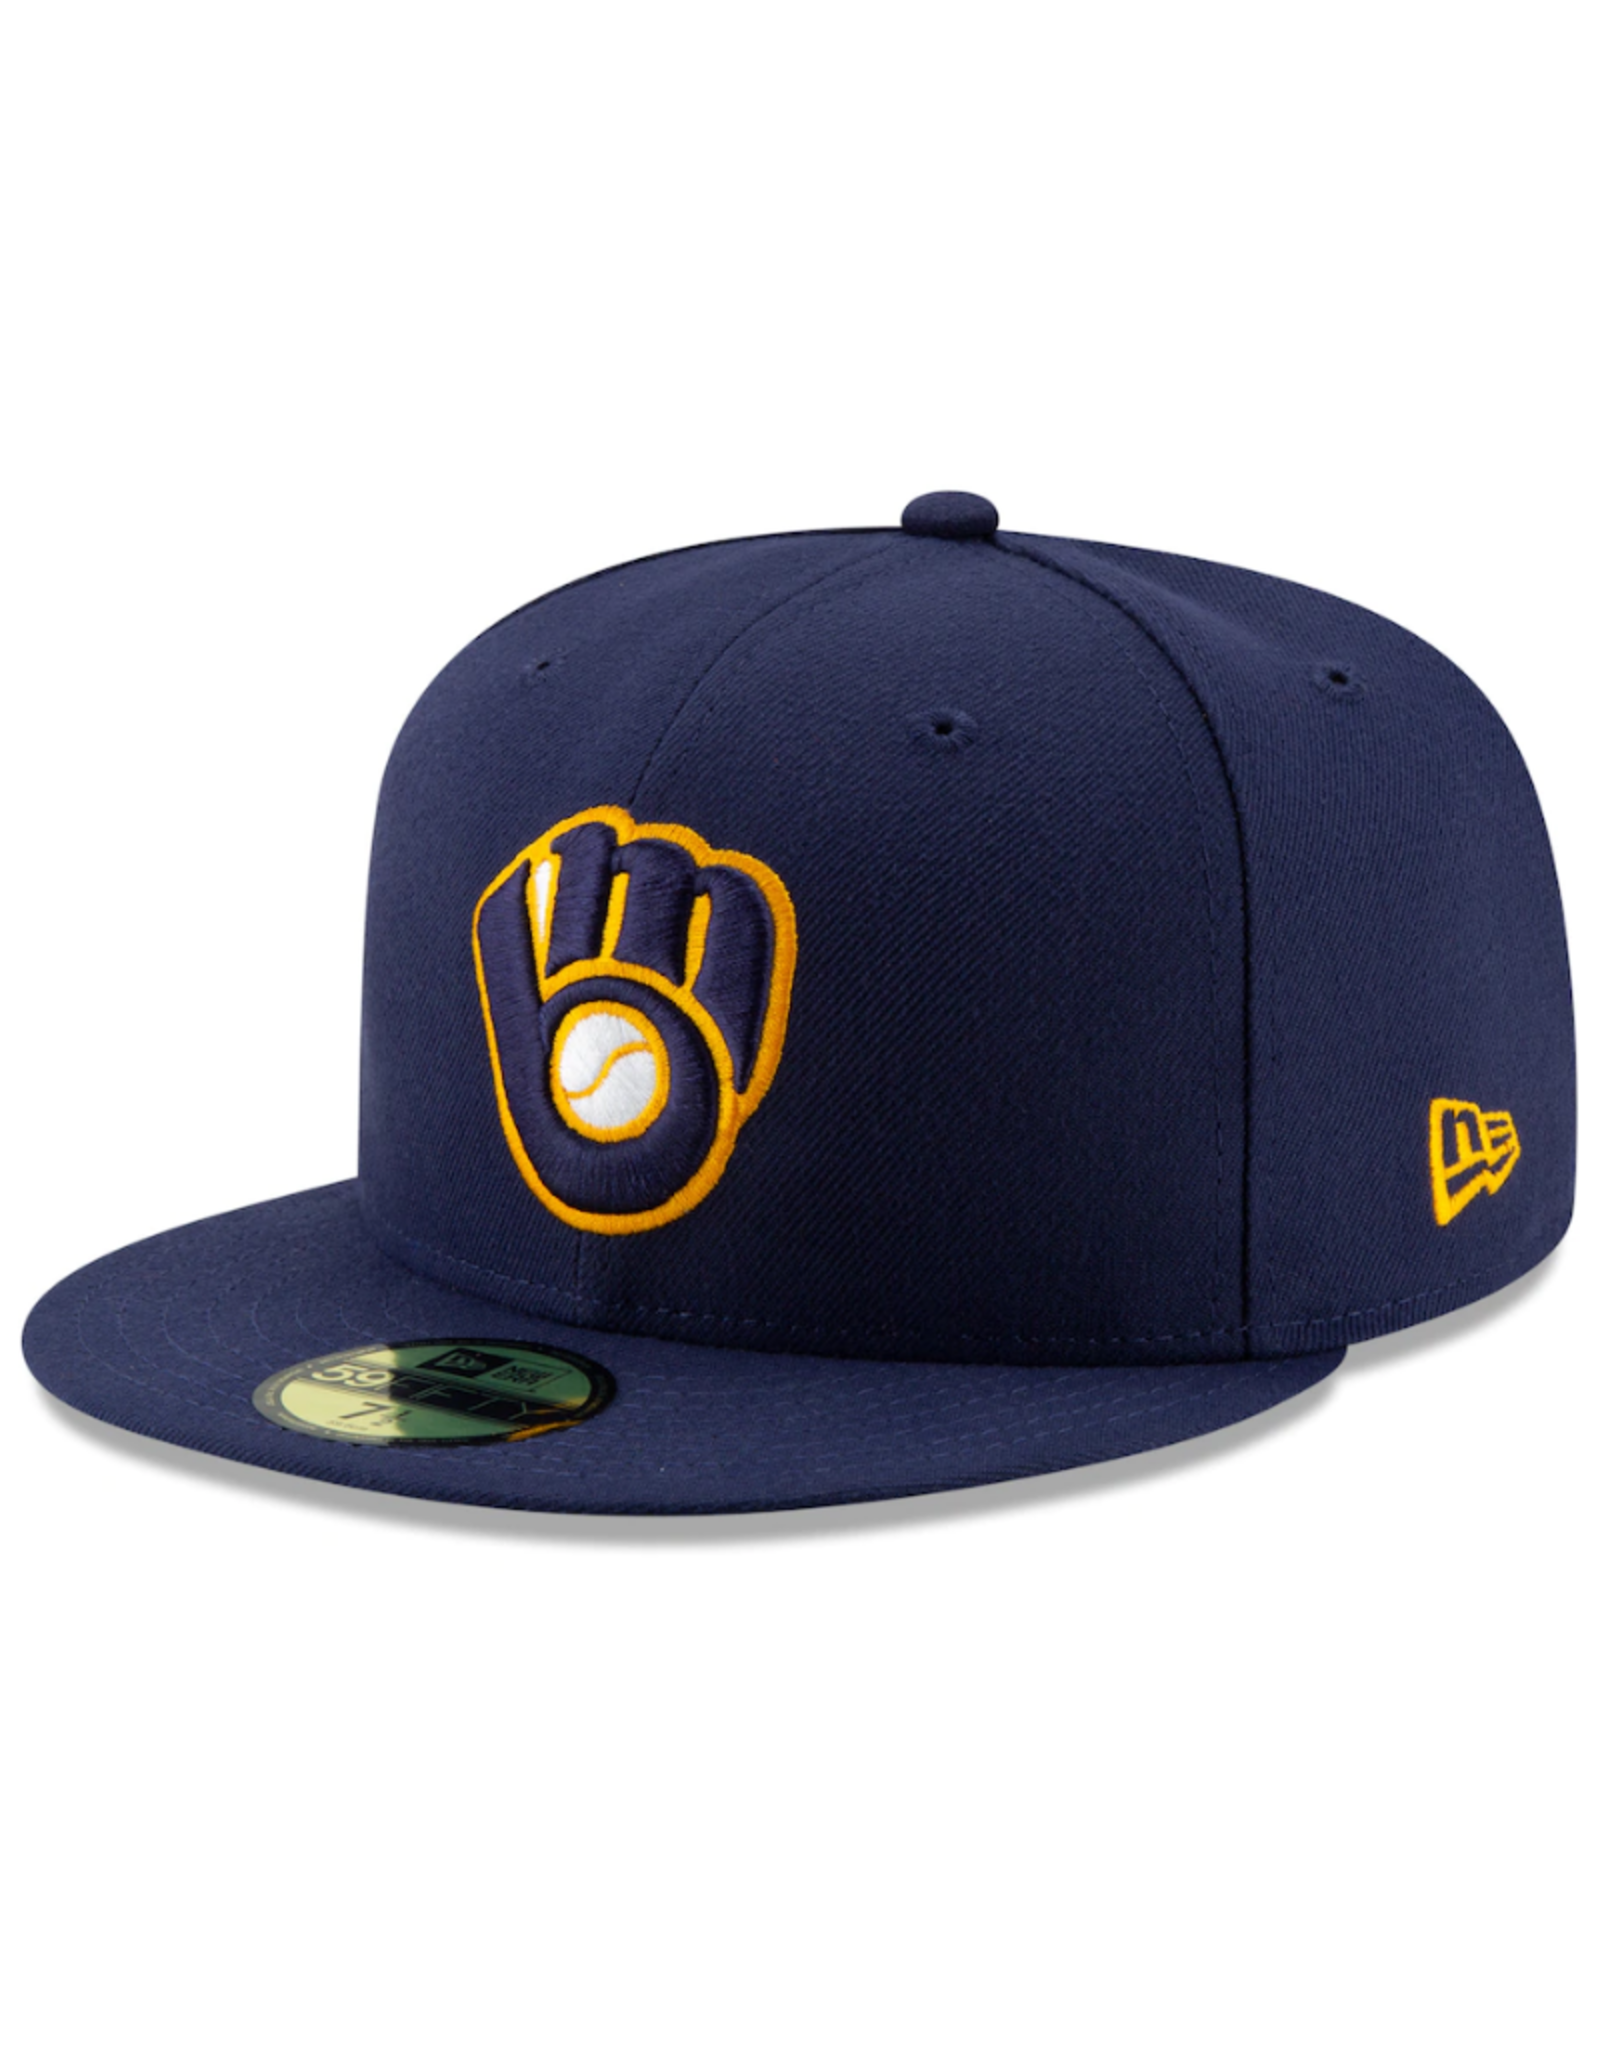 New Era On-Field '20 Home Milwaukee Brewers Navy